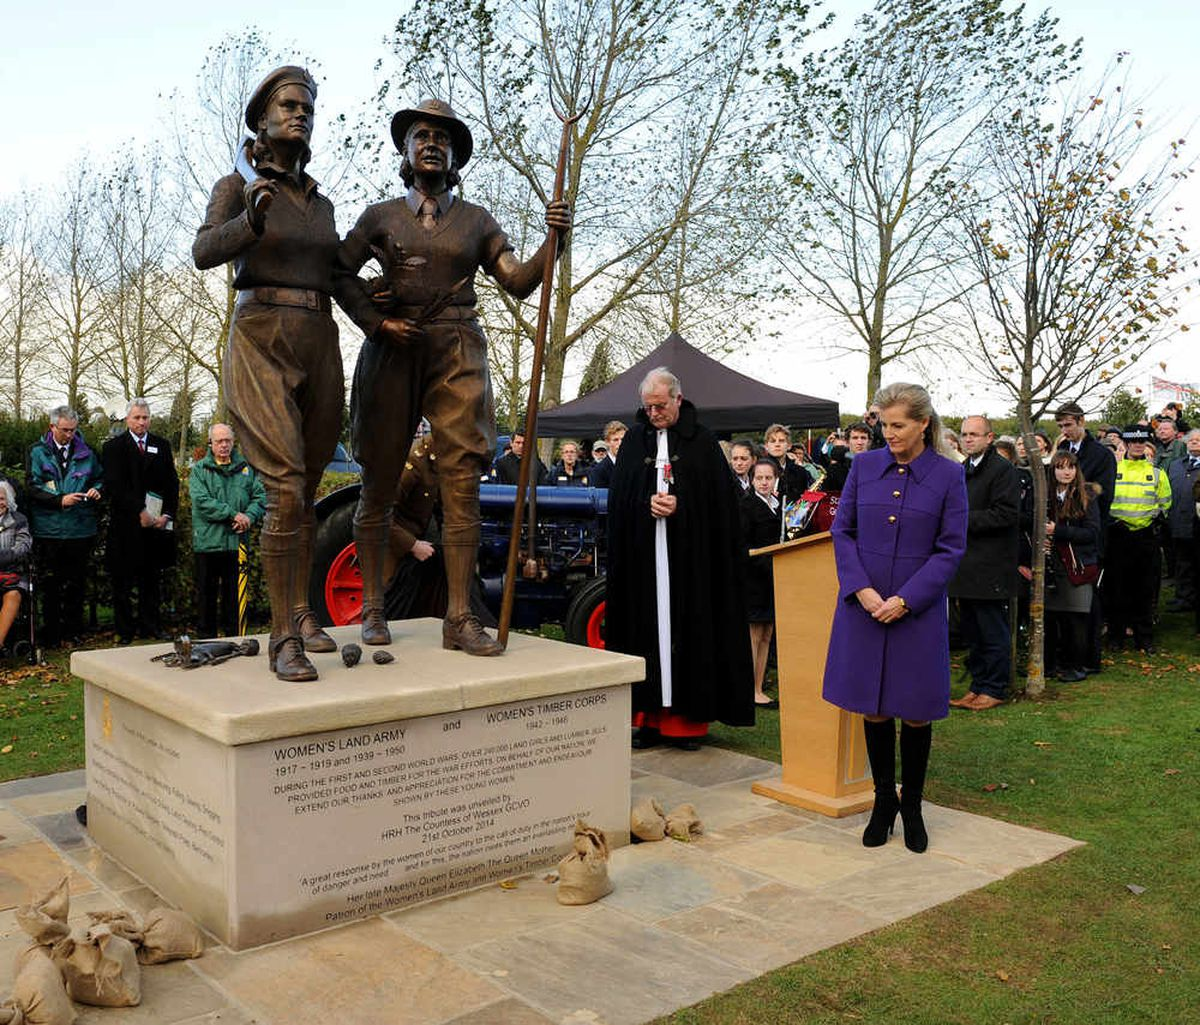 What an amazing turnout – thousands gathered for the unveiling ceremony to honour the Land Girls and the Lumber Jills.